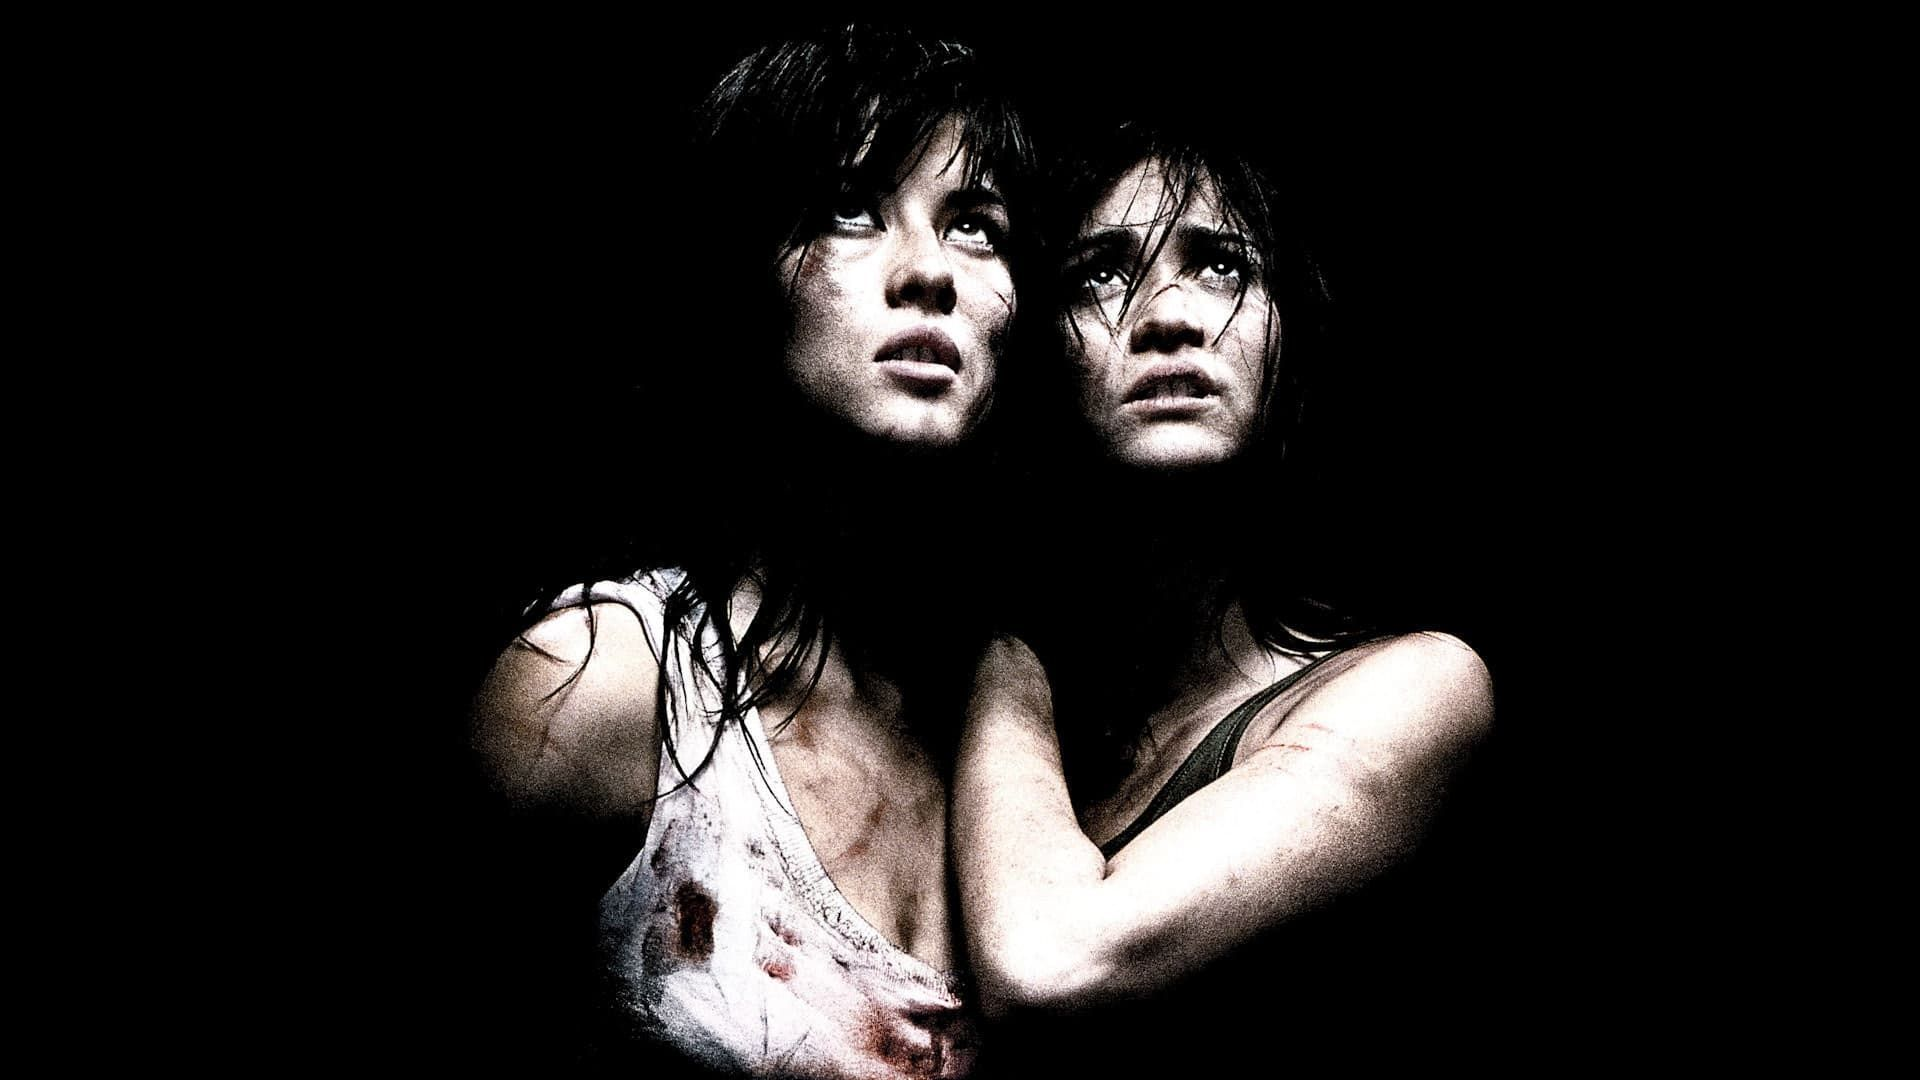 Martyrs 2008 Where To Watch It Streaming Online Reelgood